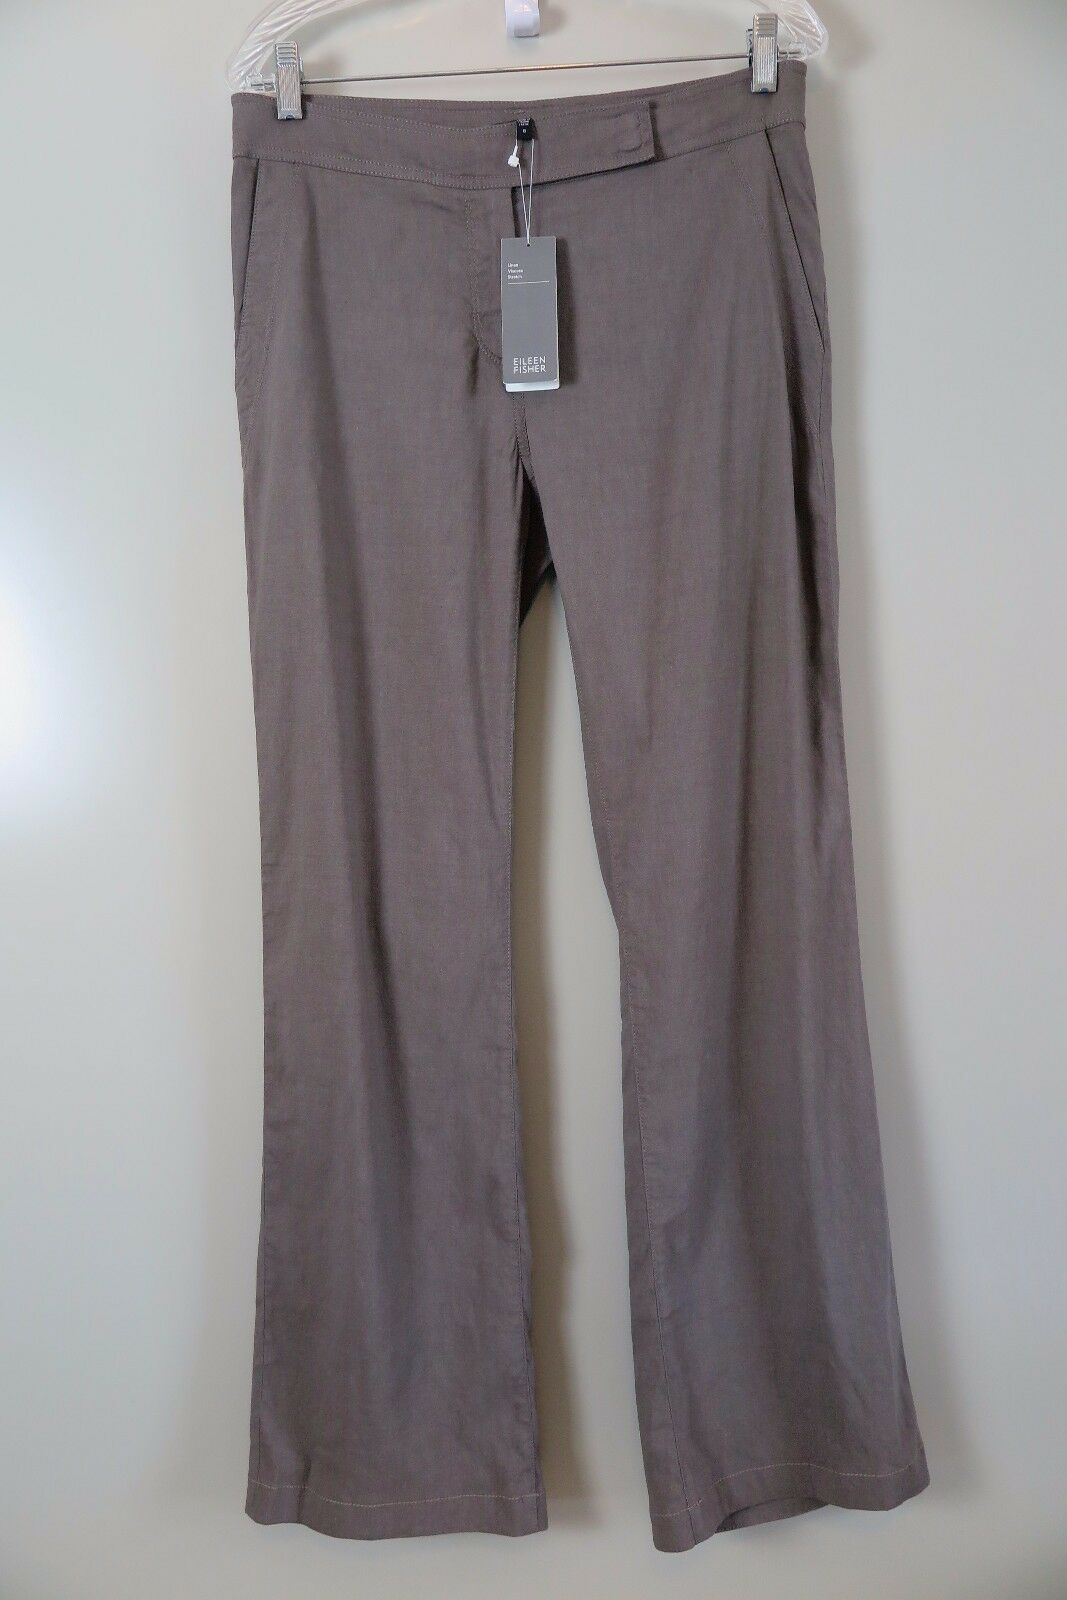 NWT Eileen Fisher Taupe Linen Viscose Stretch Straight Trousers Size 6